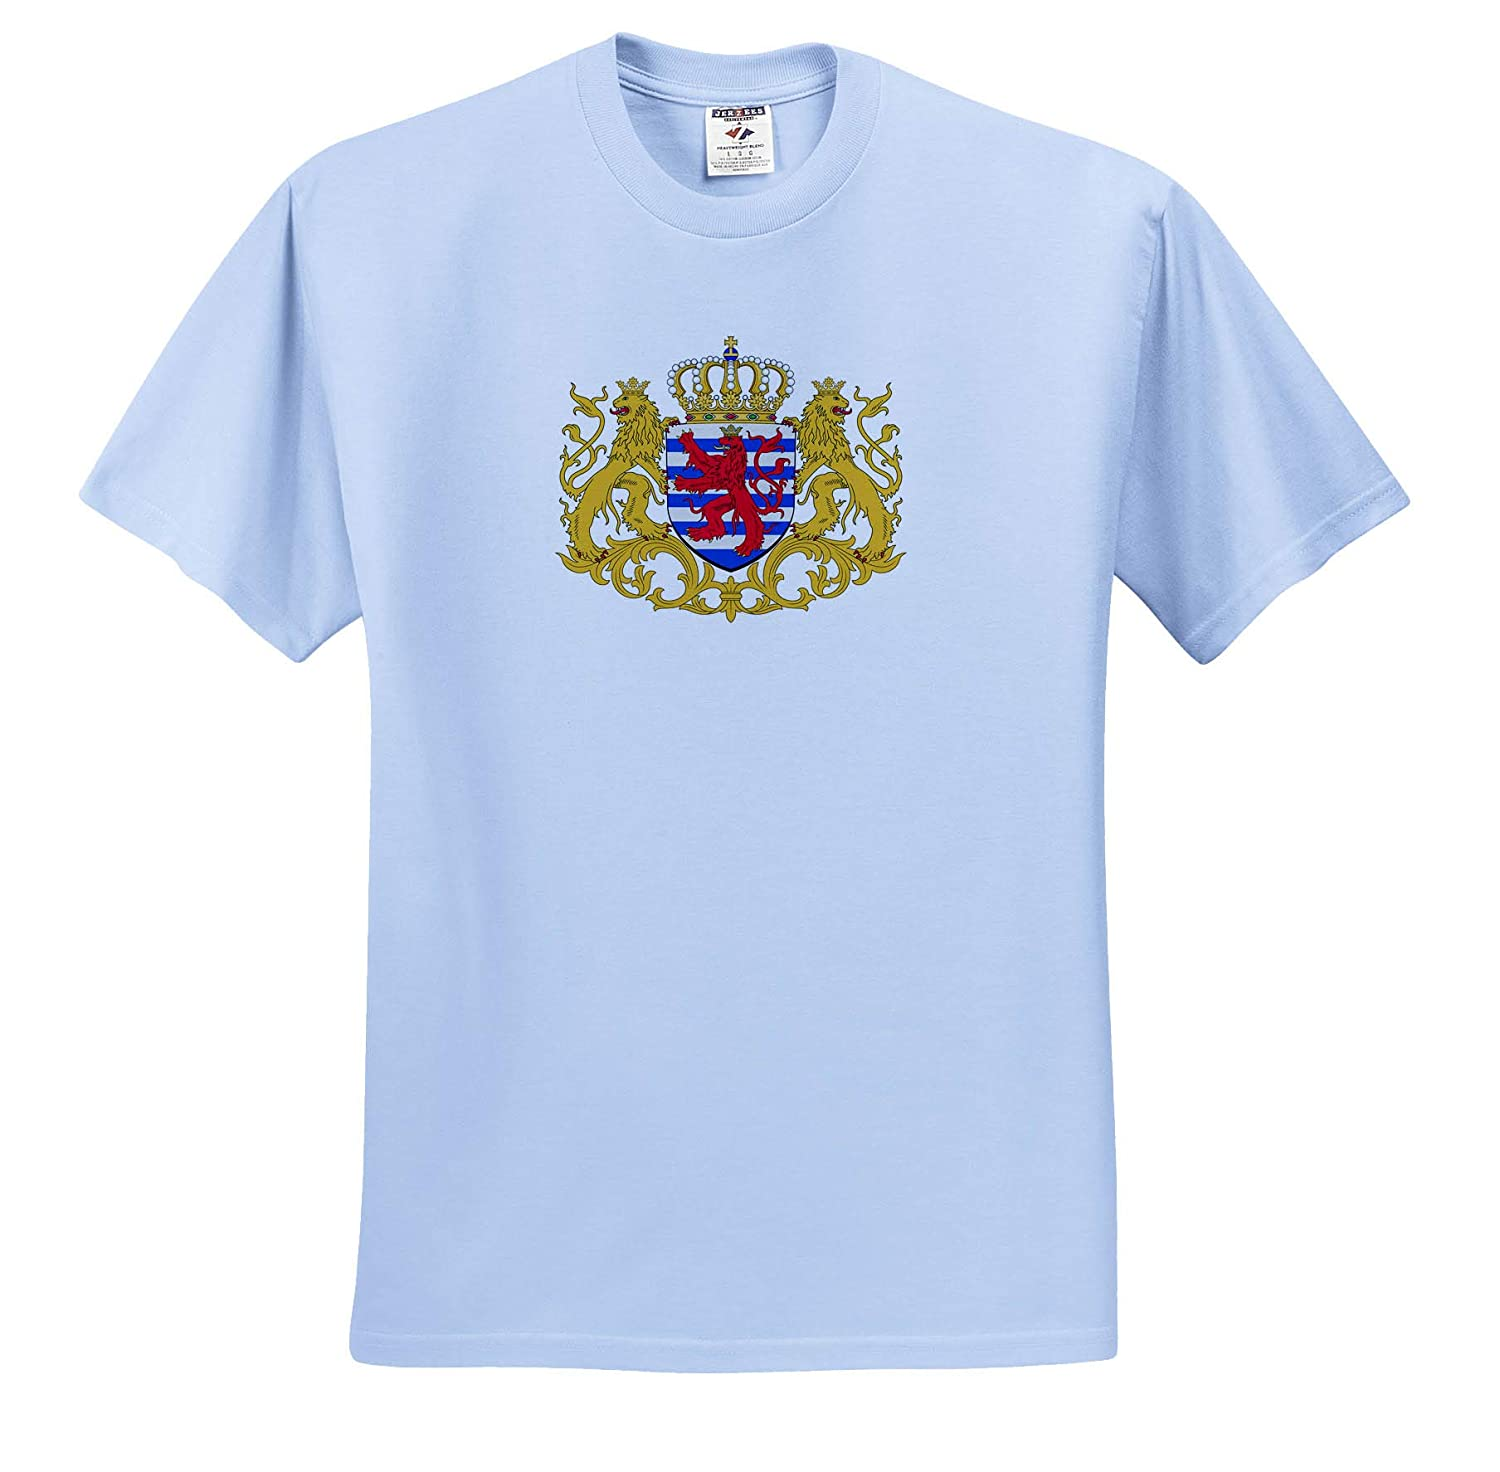 Illustrations Luxembourg Coat of Arms 3dRose Carsten Reisinger T-Shirts